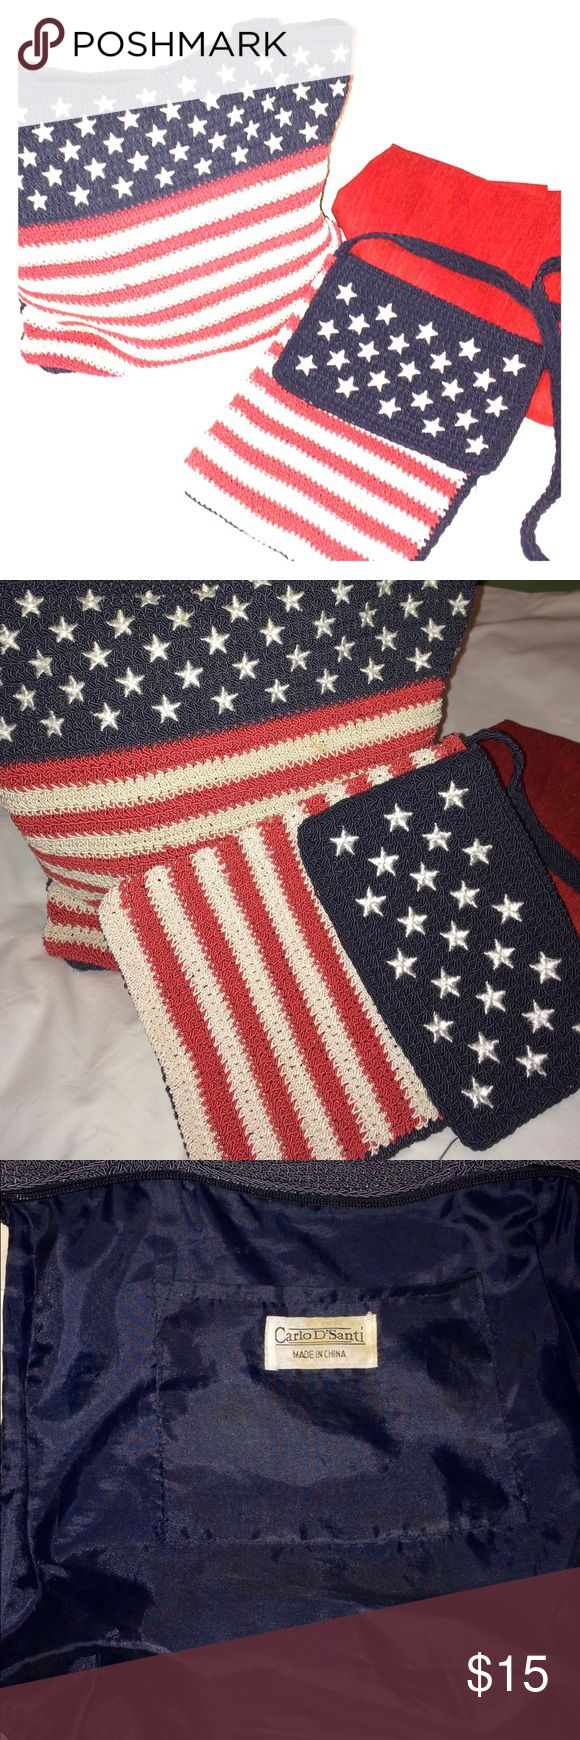 Patriotic Woven Flag Purse & Mini Crossover Purse Woven shoulder purse with red & CREAM stripes, white stars, and navy similar to flag design. Carlos D'Santi Bags Shoulder Bags